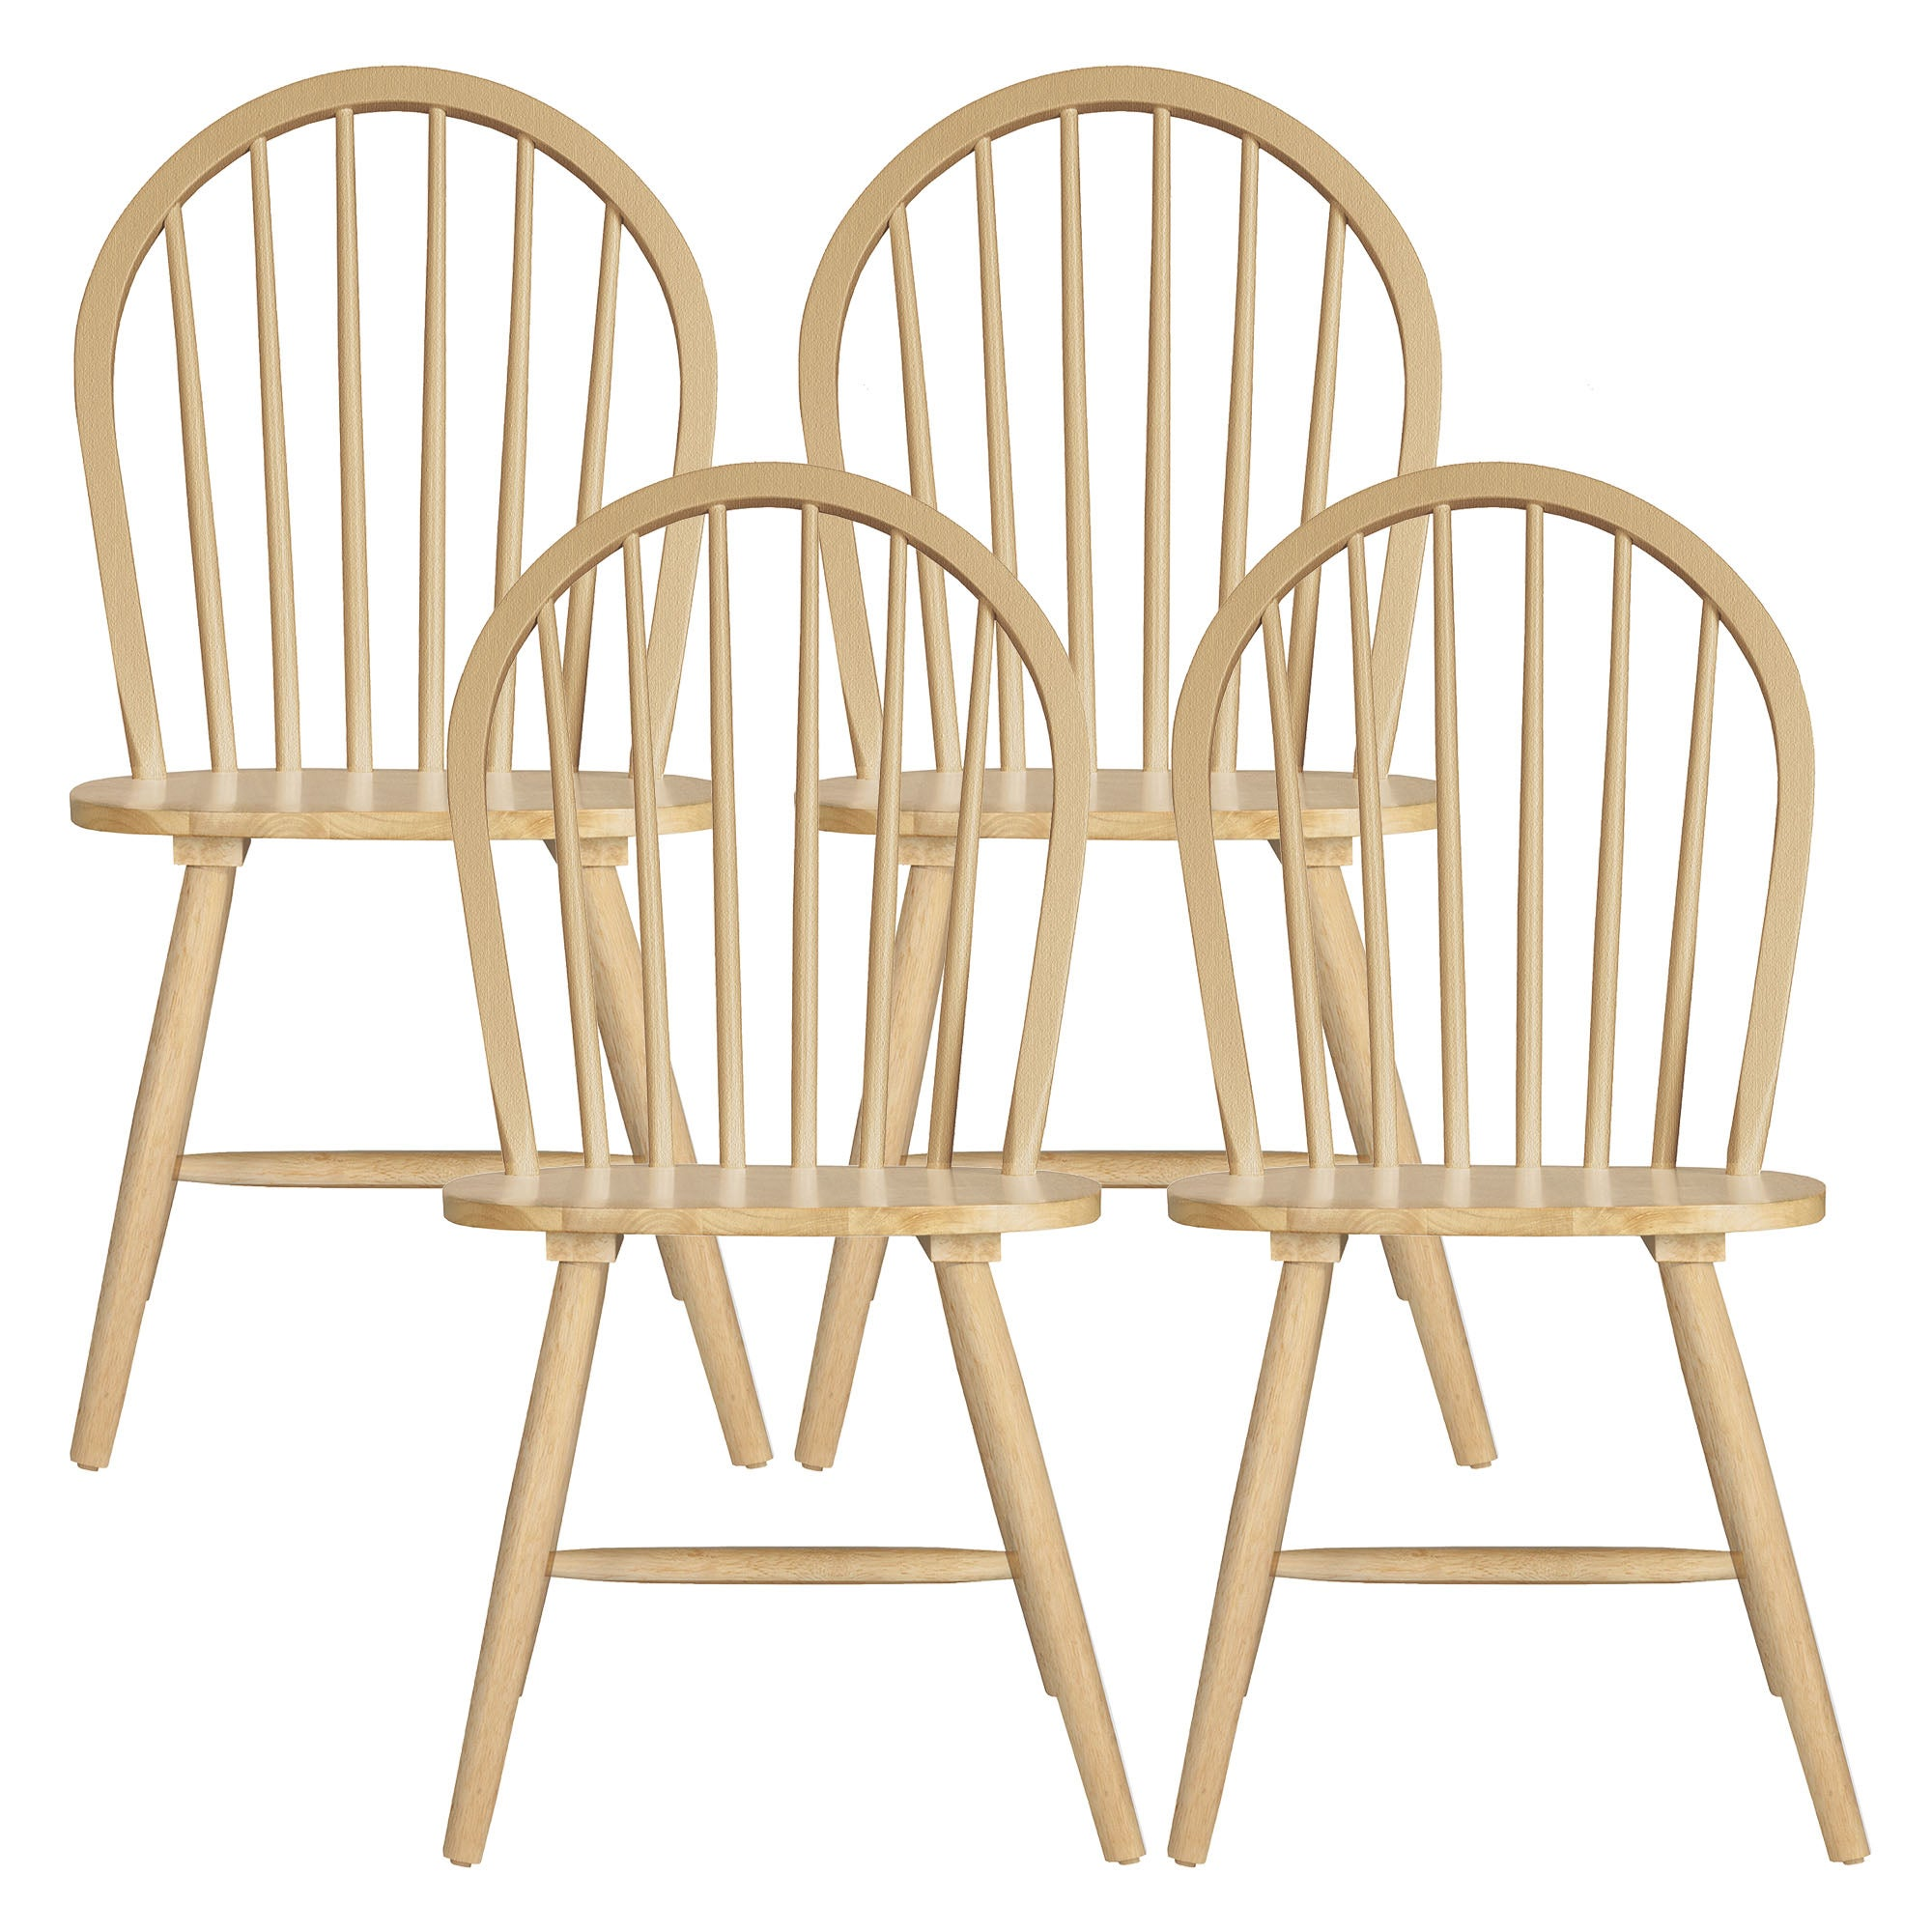 Alabama Natural Set of 4 Dining Chairs